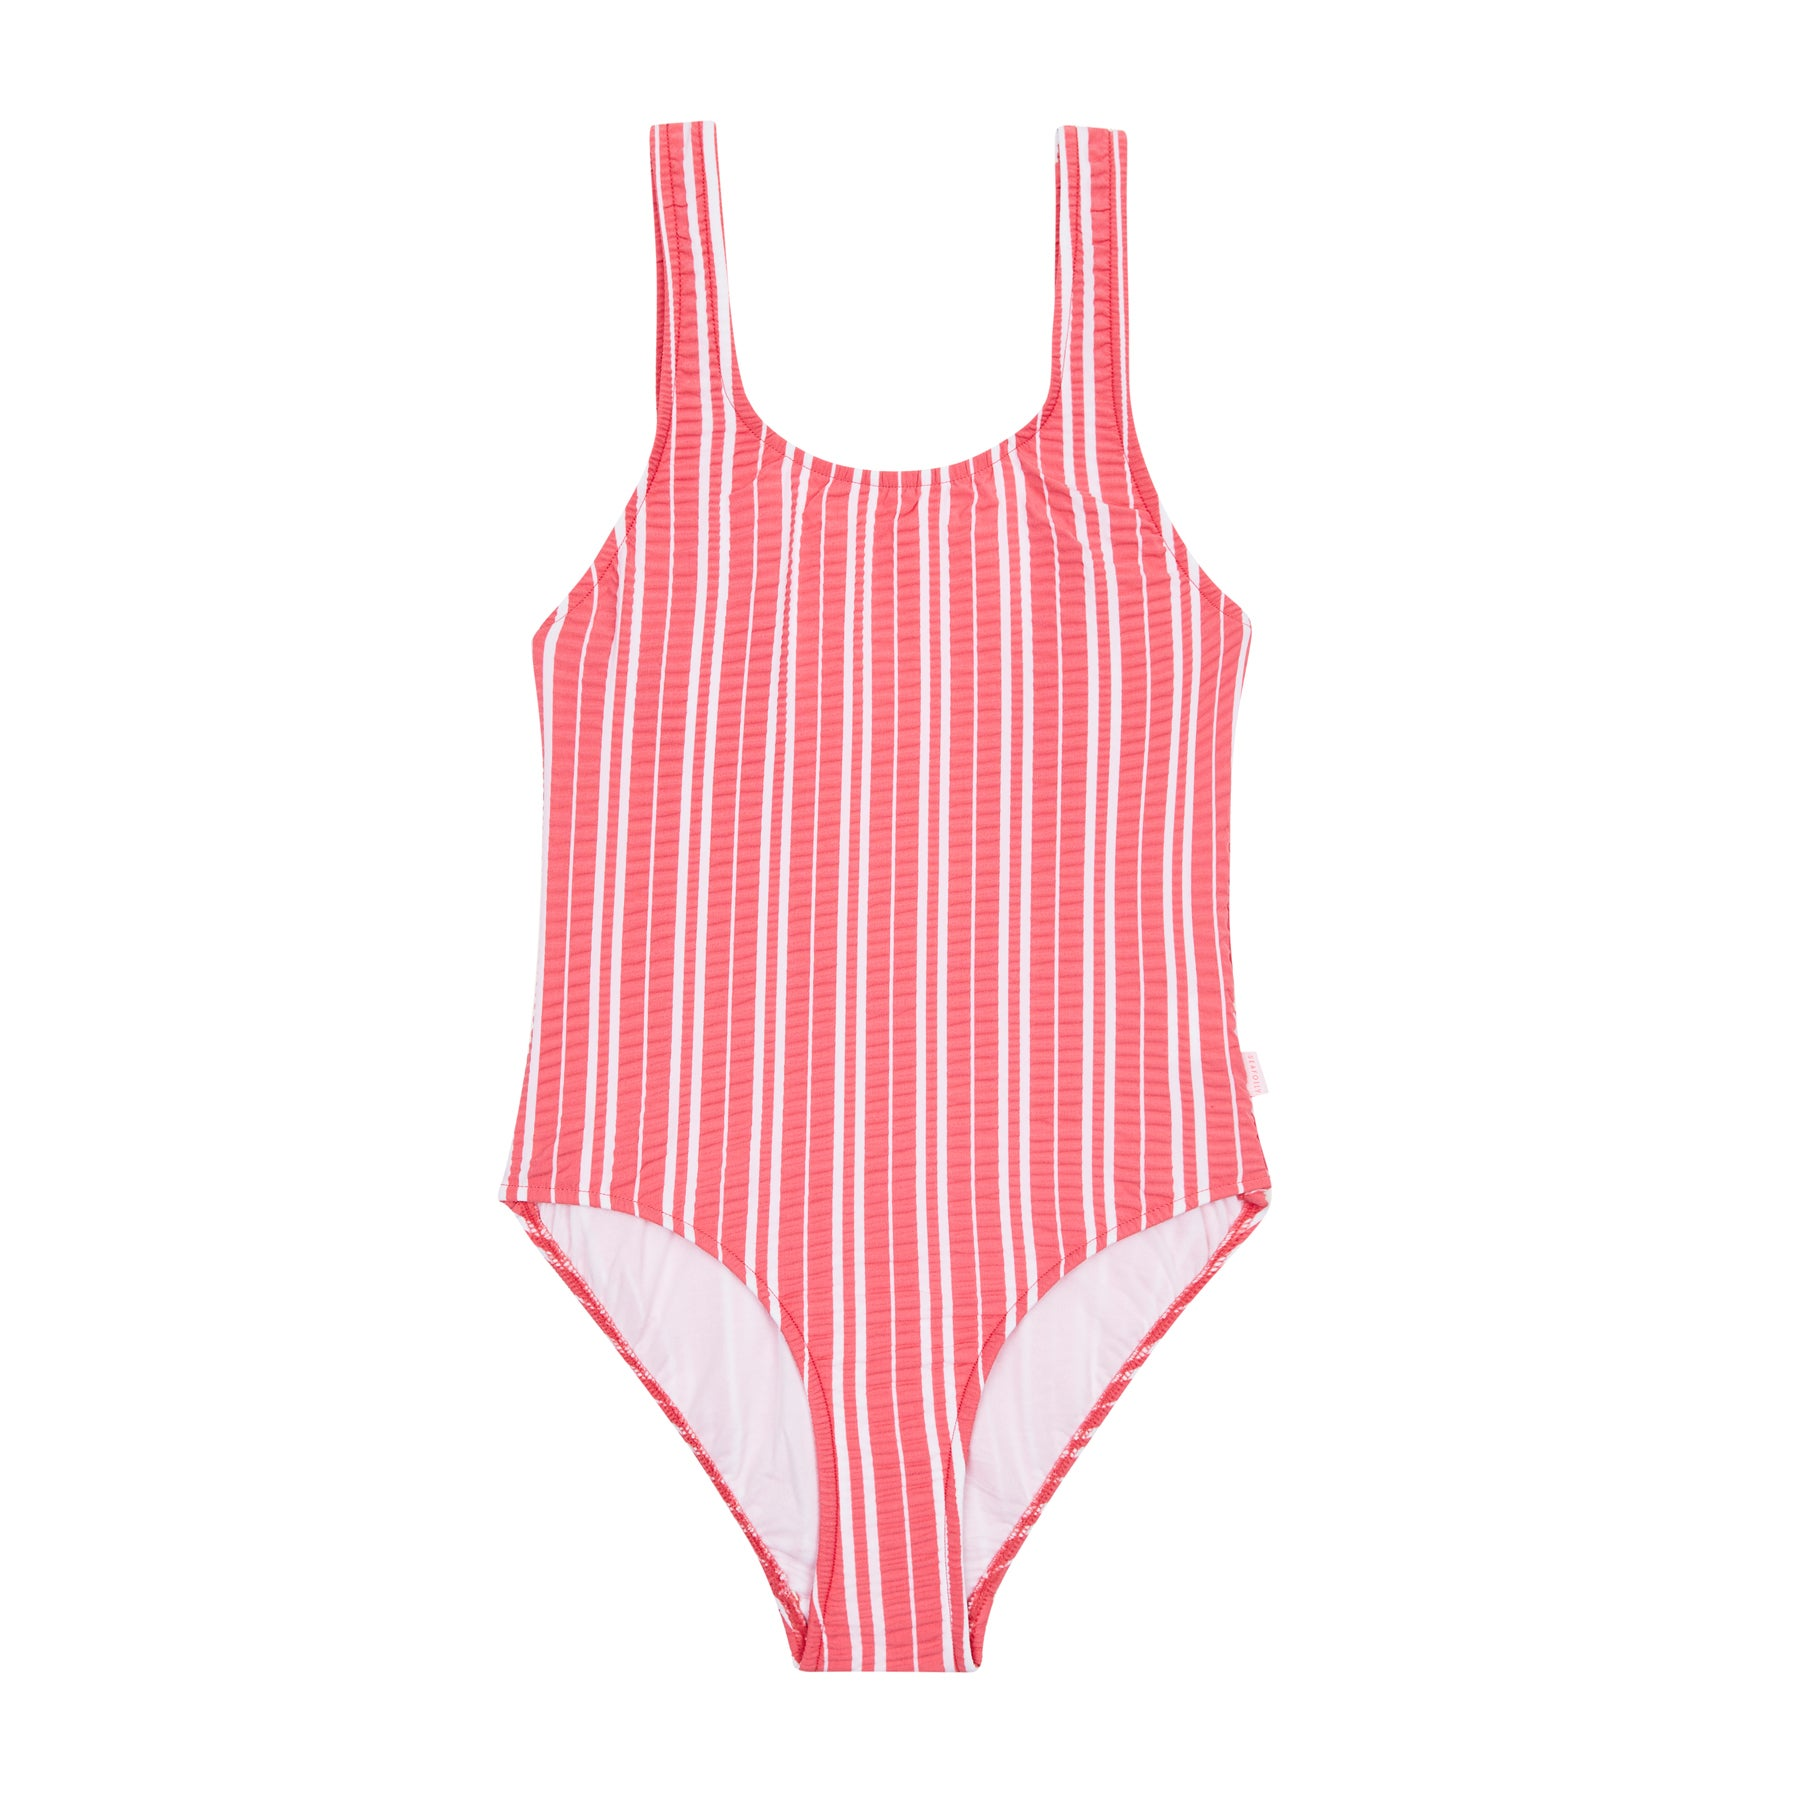 Seafolly 80s Girls Swimsuit - Pink